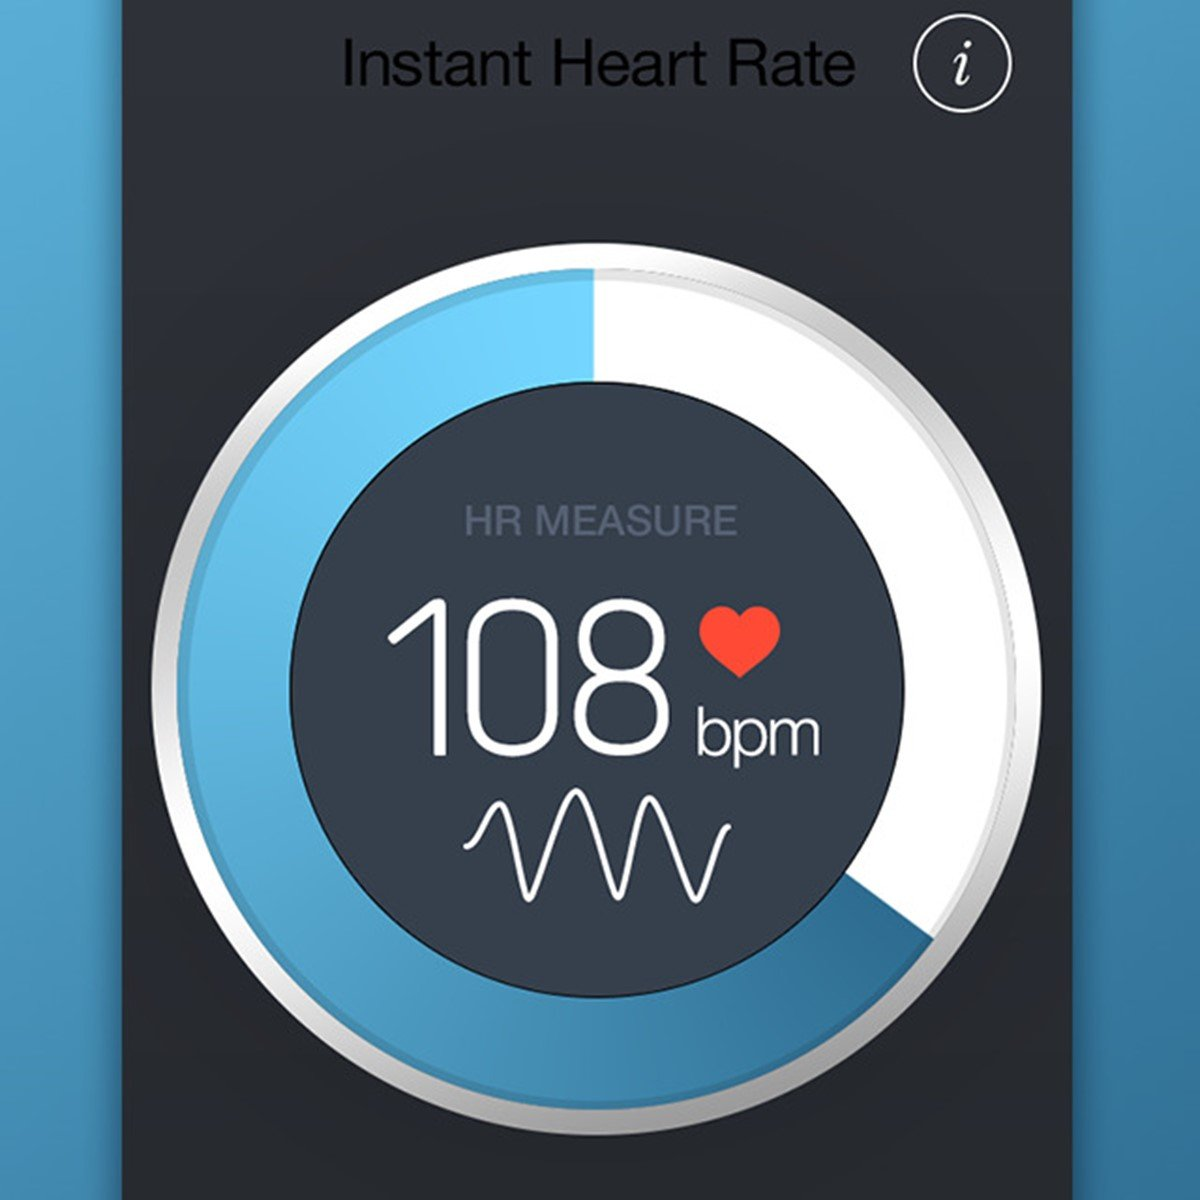 0c5c4aef39f Instant Heart Rate Alternatives and Similar Apps - AlternativeTo.net